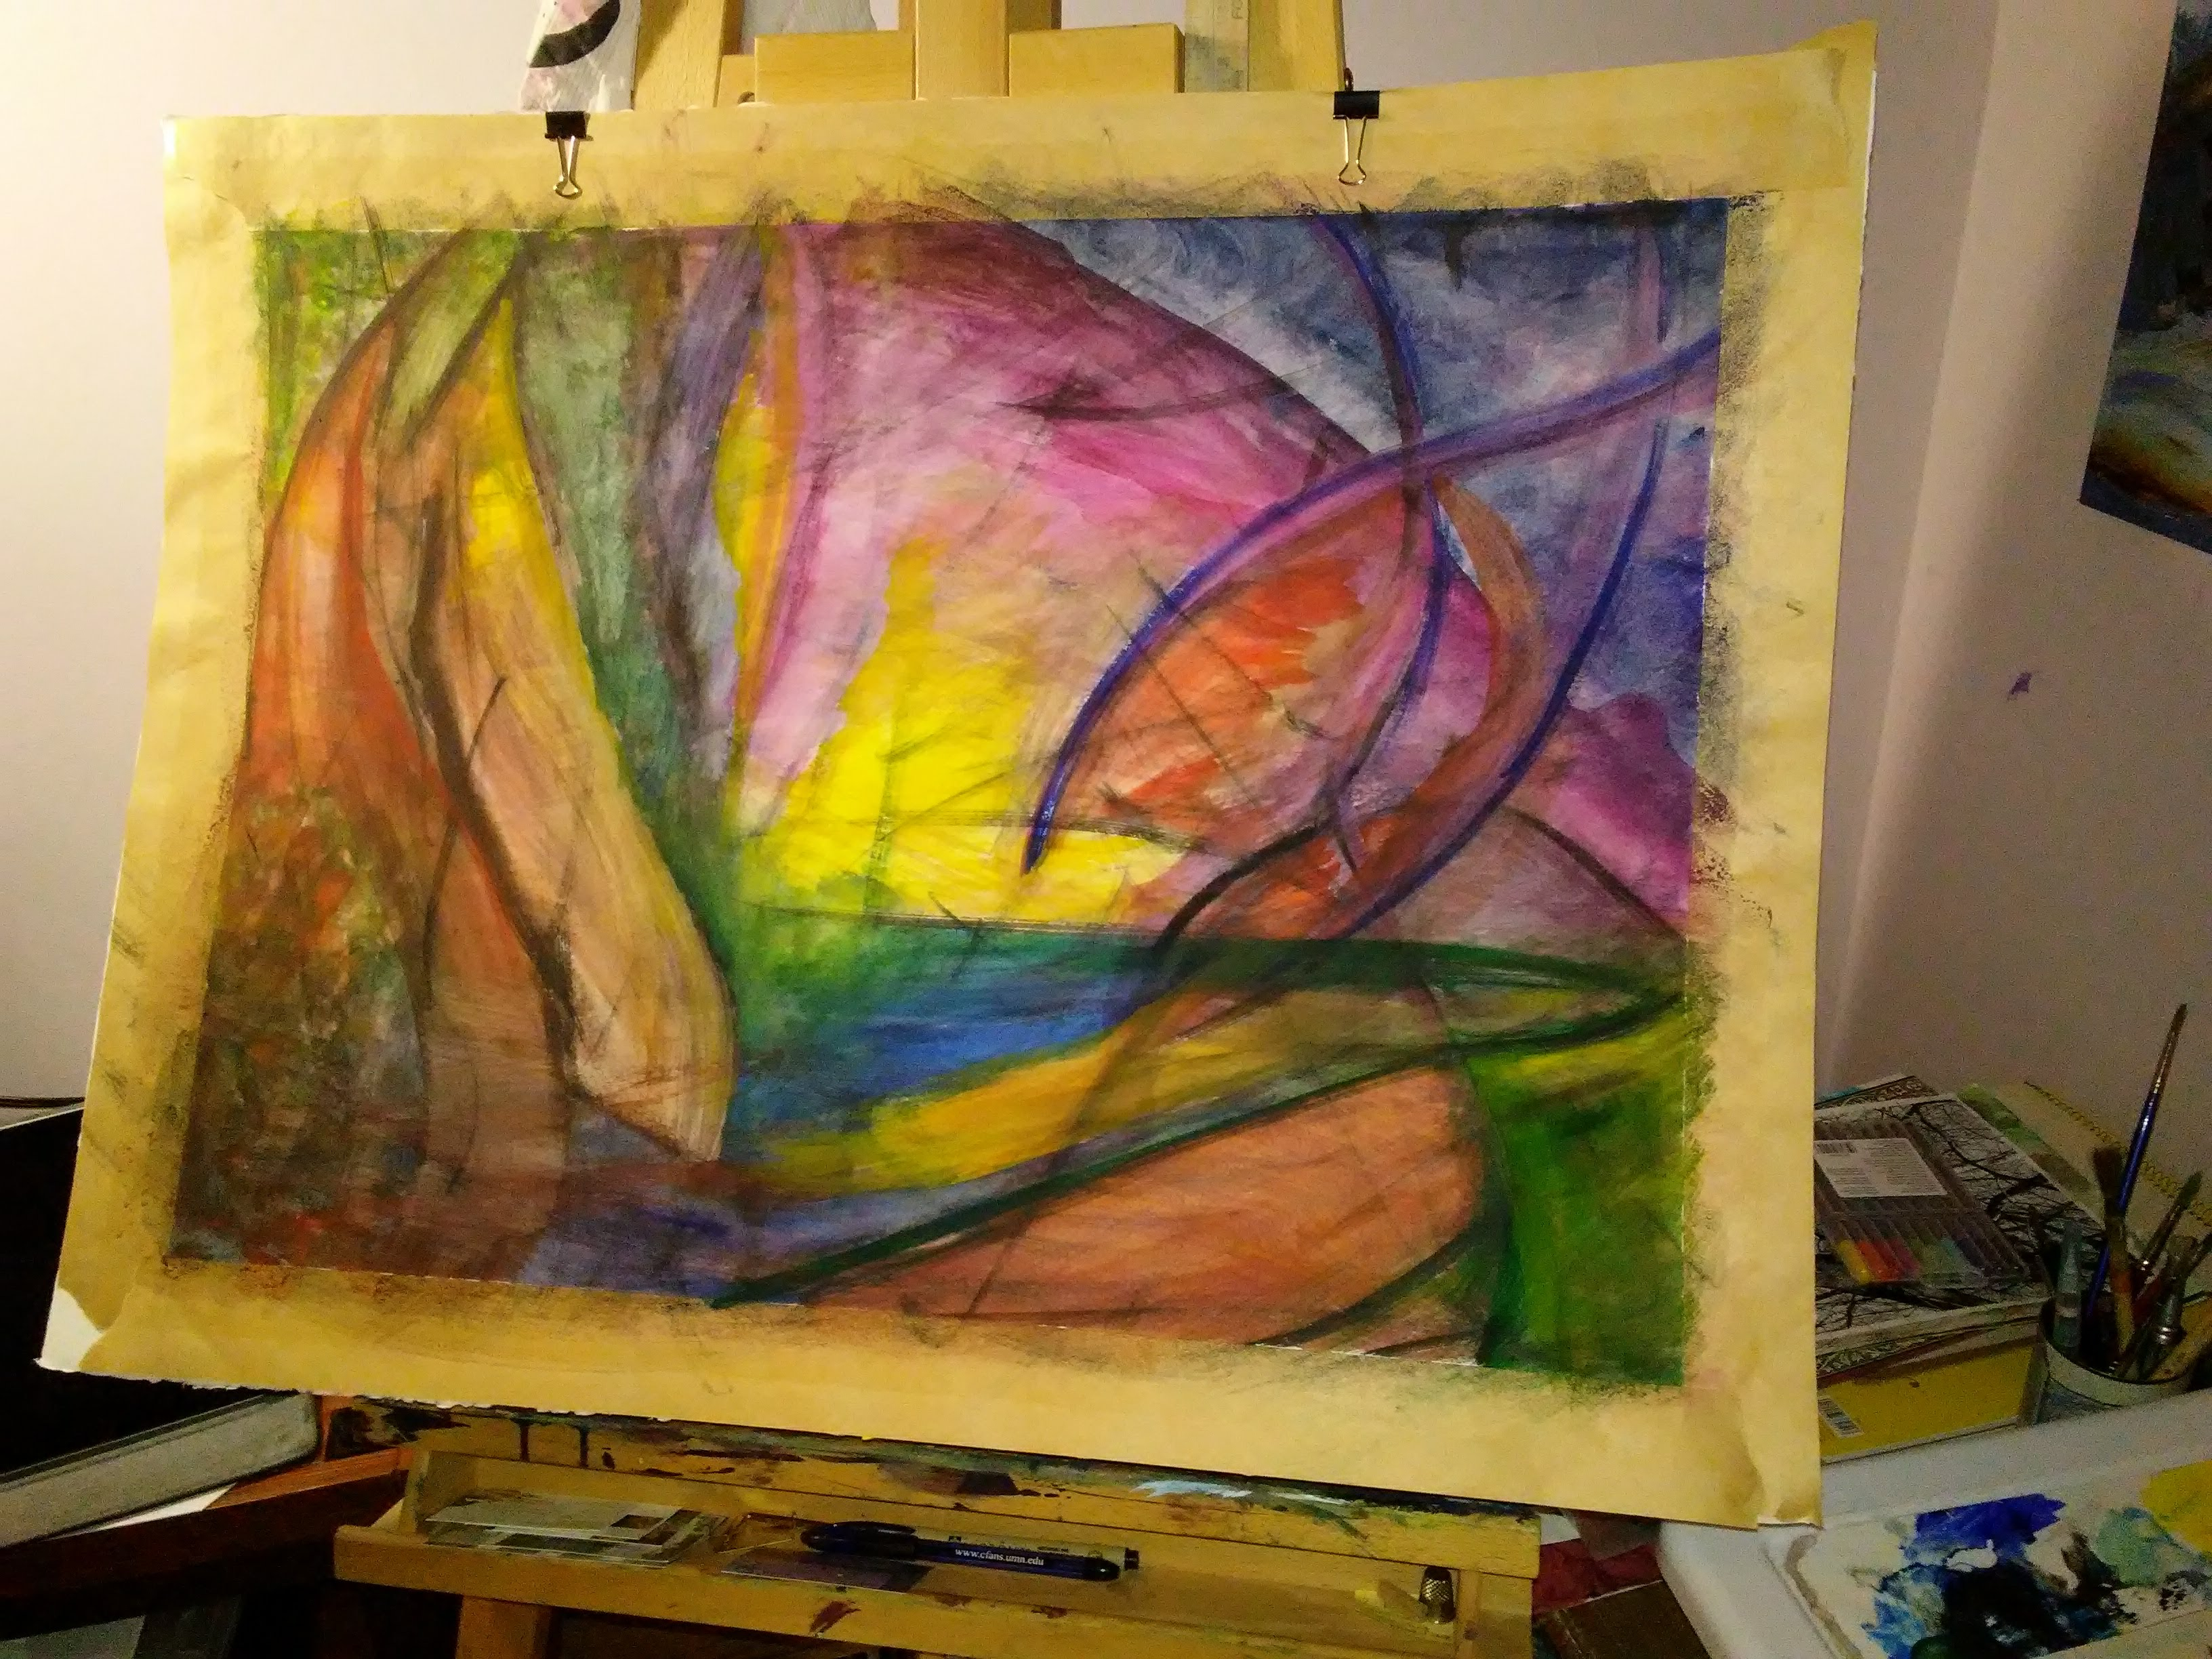 painting on an easel. Abstract shapes and bright colors.